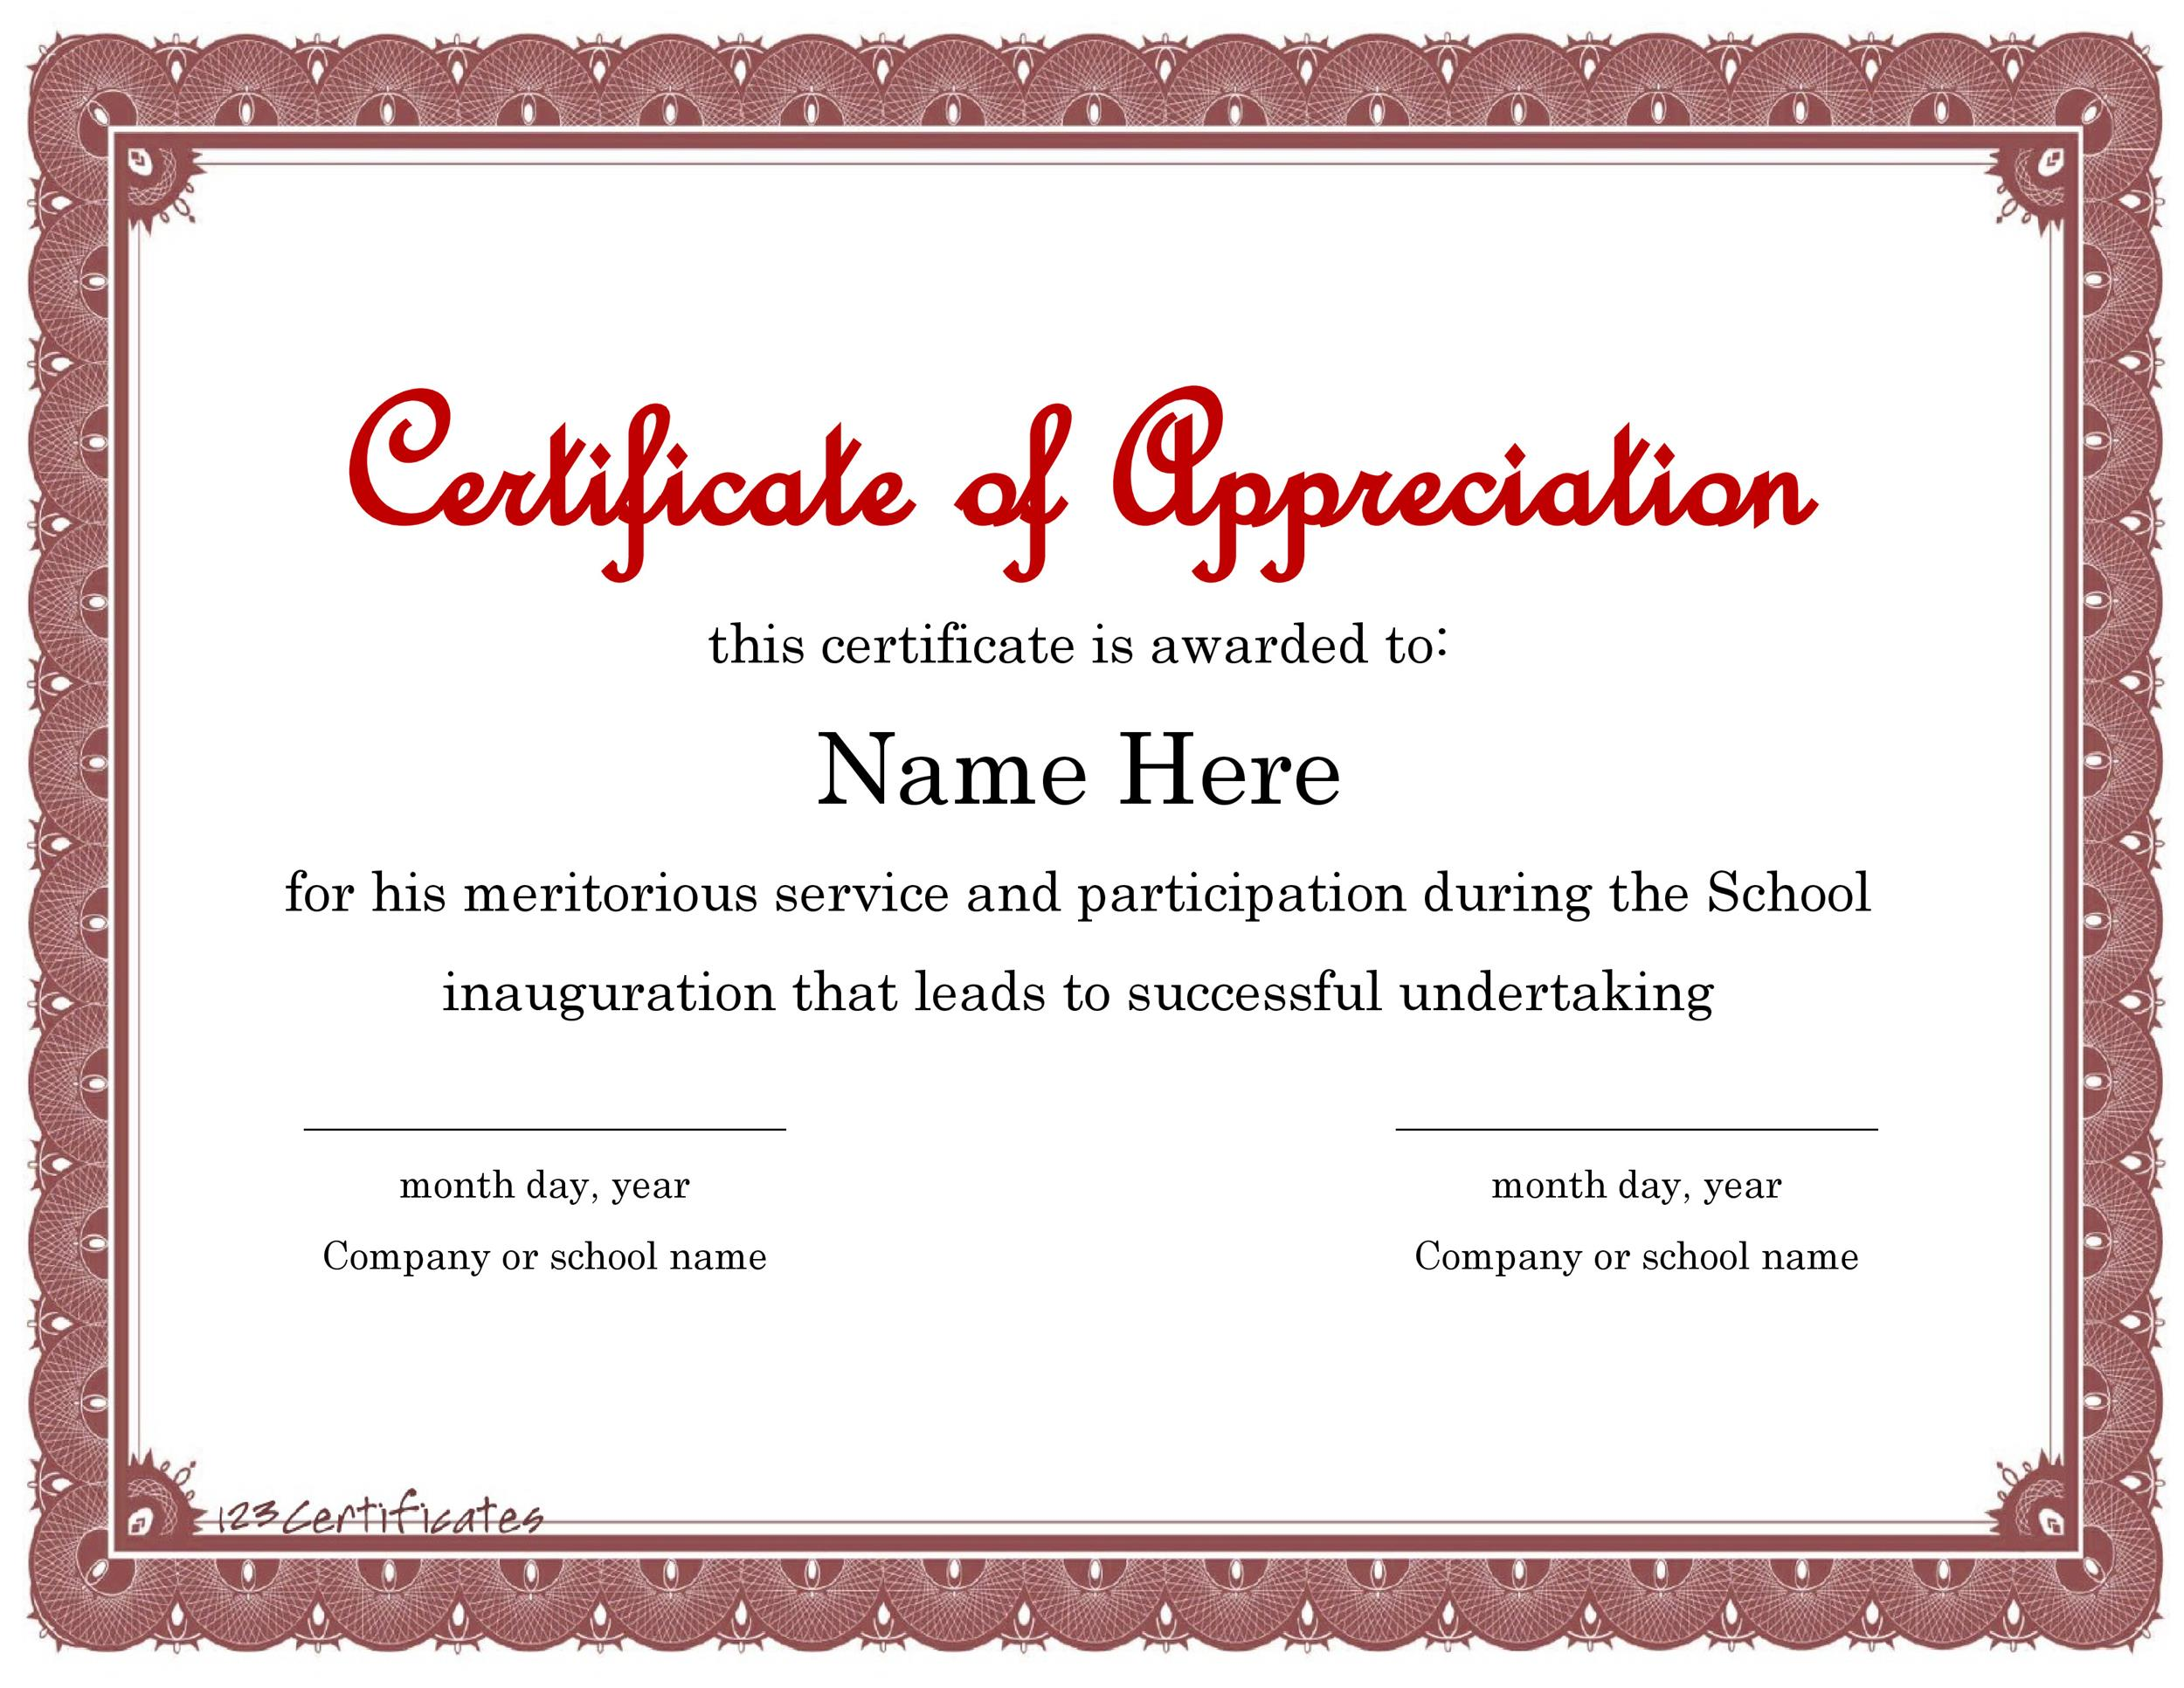 30 free certificate of appreciation templates and letters for Work anniversary certificate templates